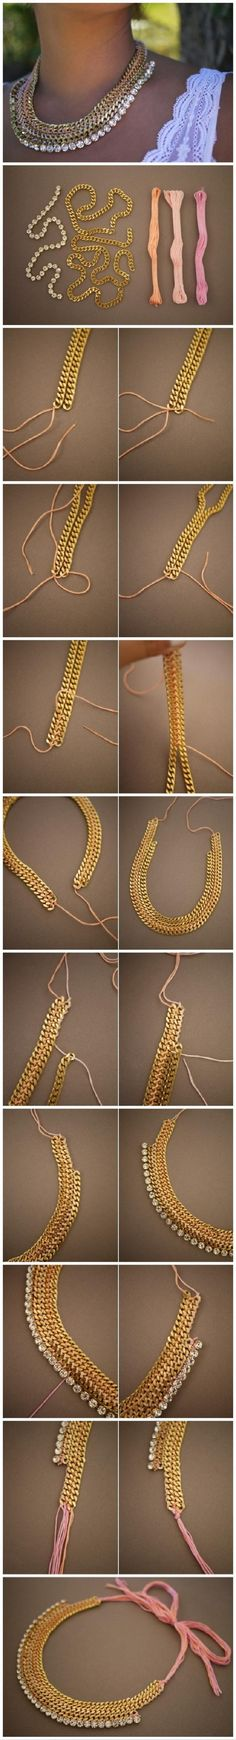 Top 10 Best Tutorials for DIY Necklaces - Top Inspired